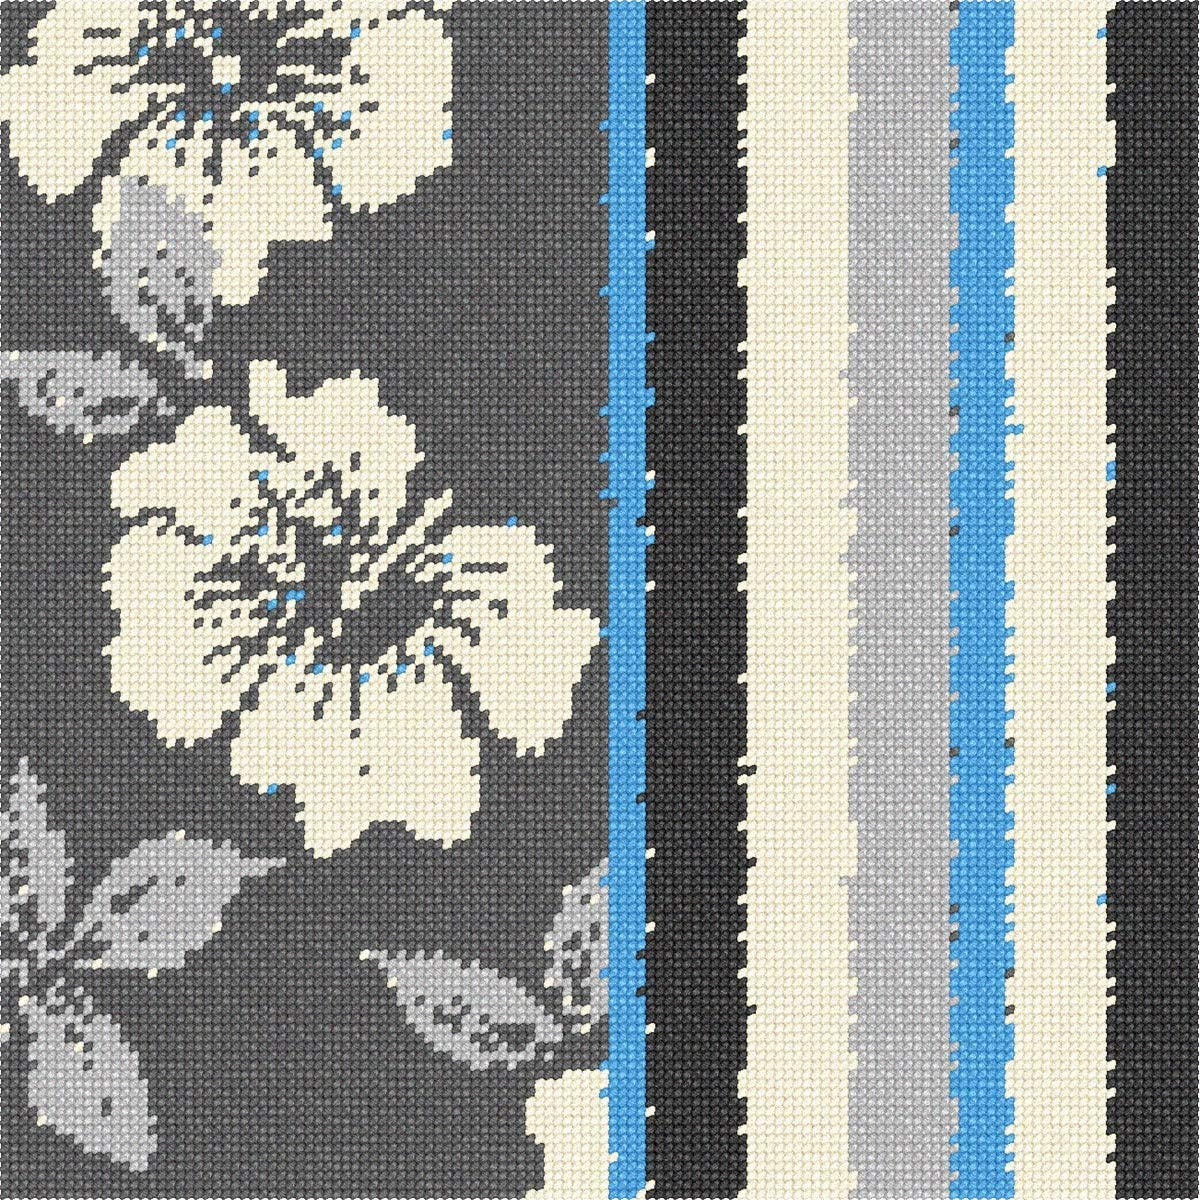 El Paso Mall pepita Grey Collection Floral 1 Needlepoint Kit Industry No.